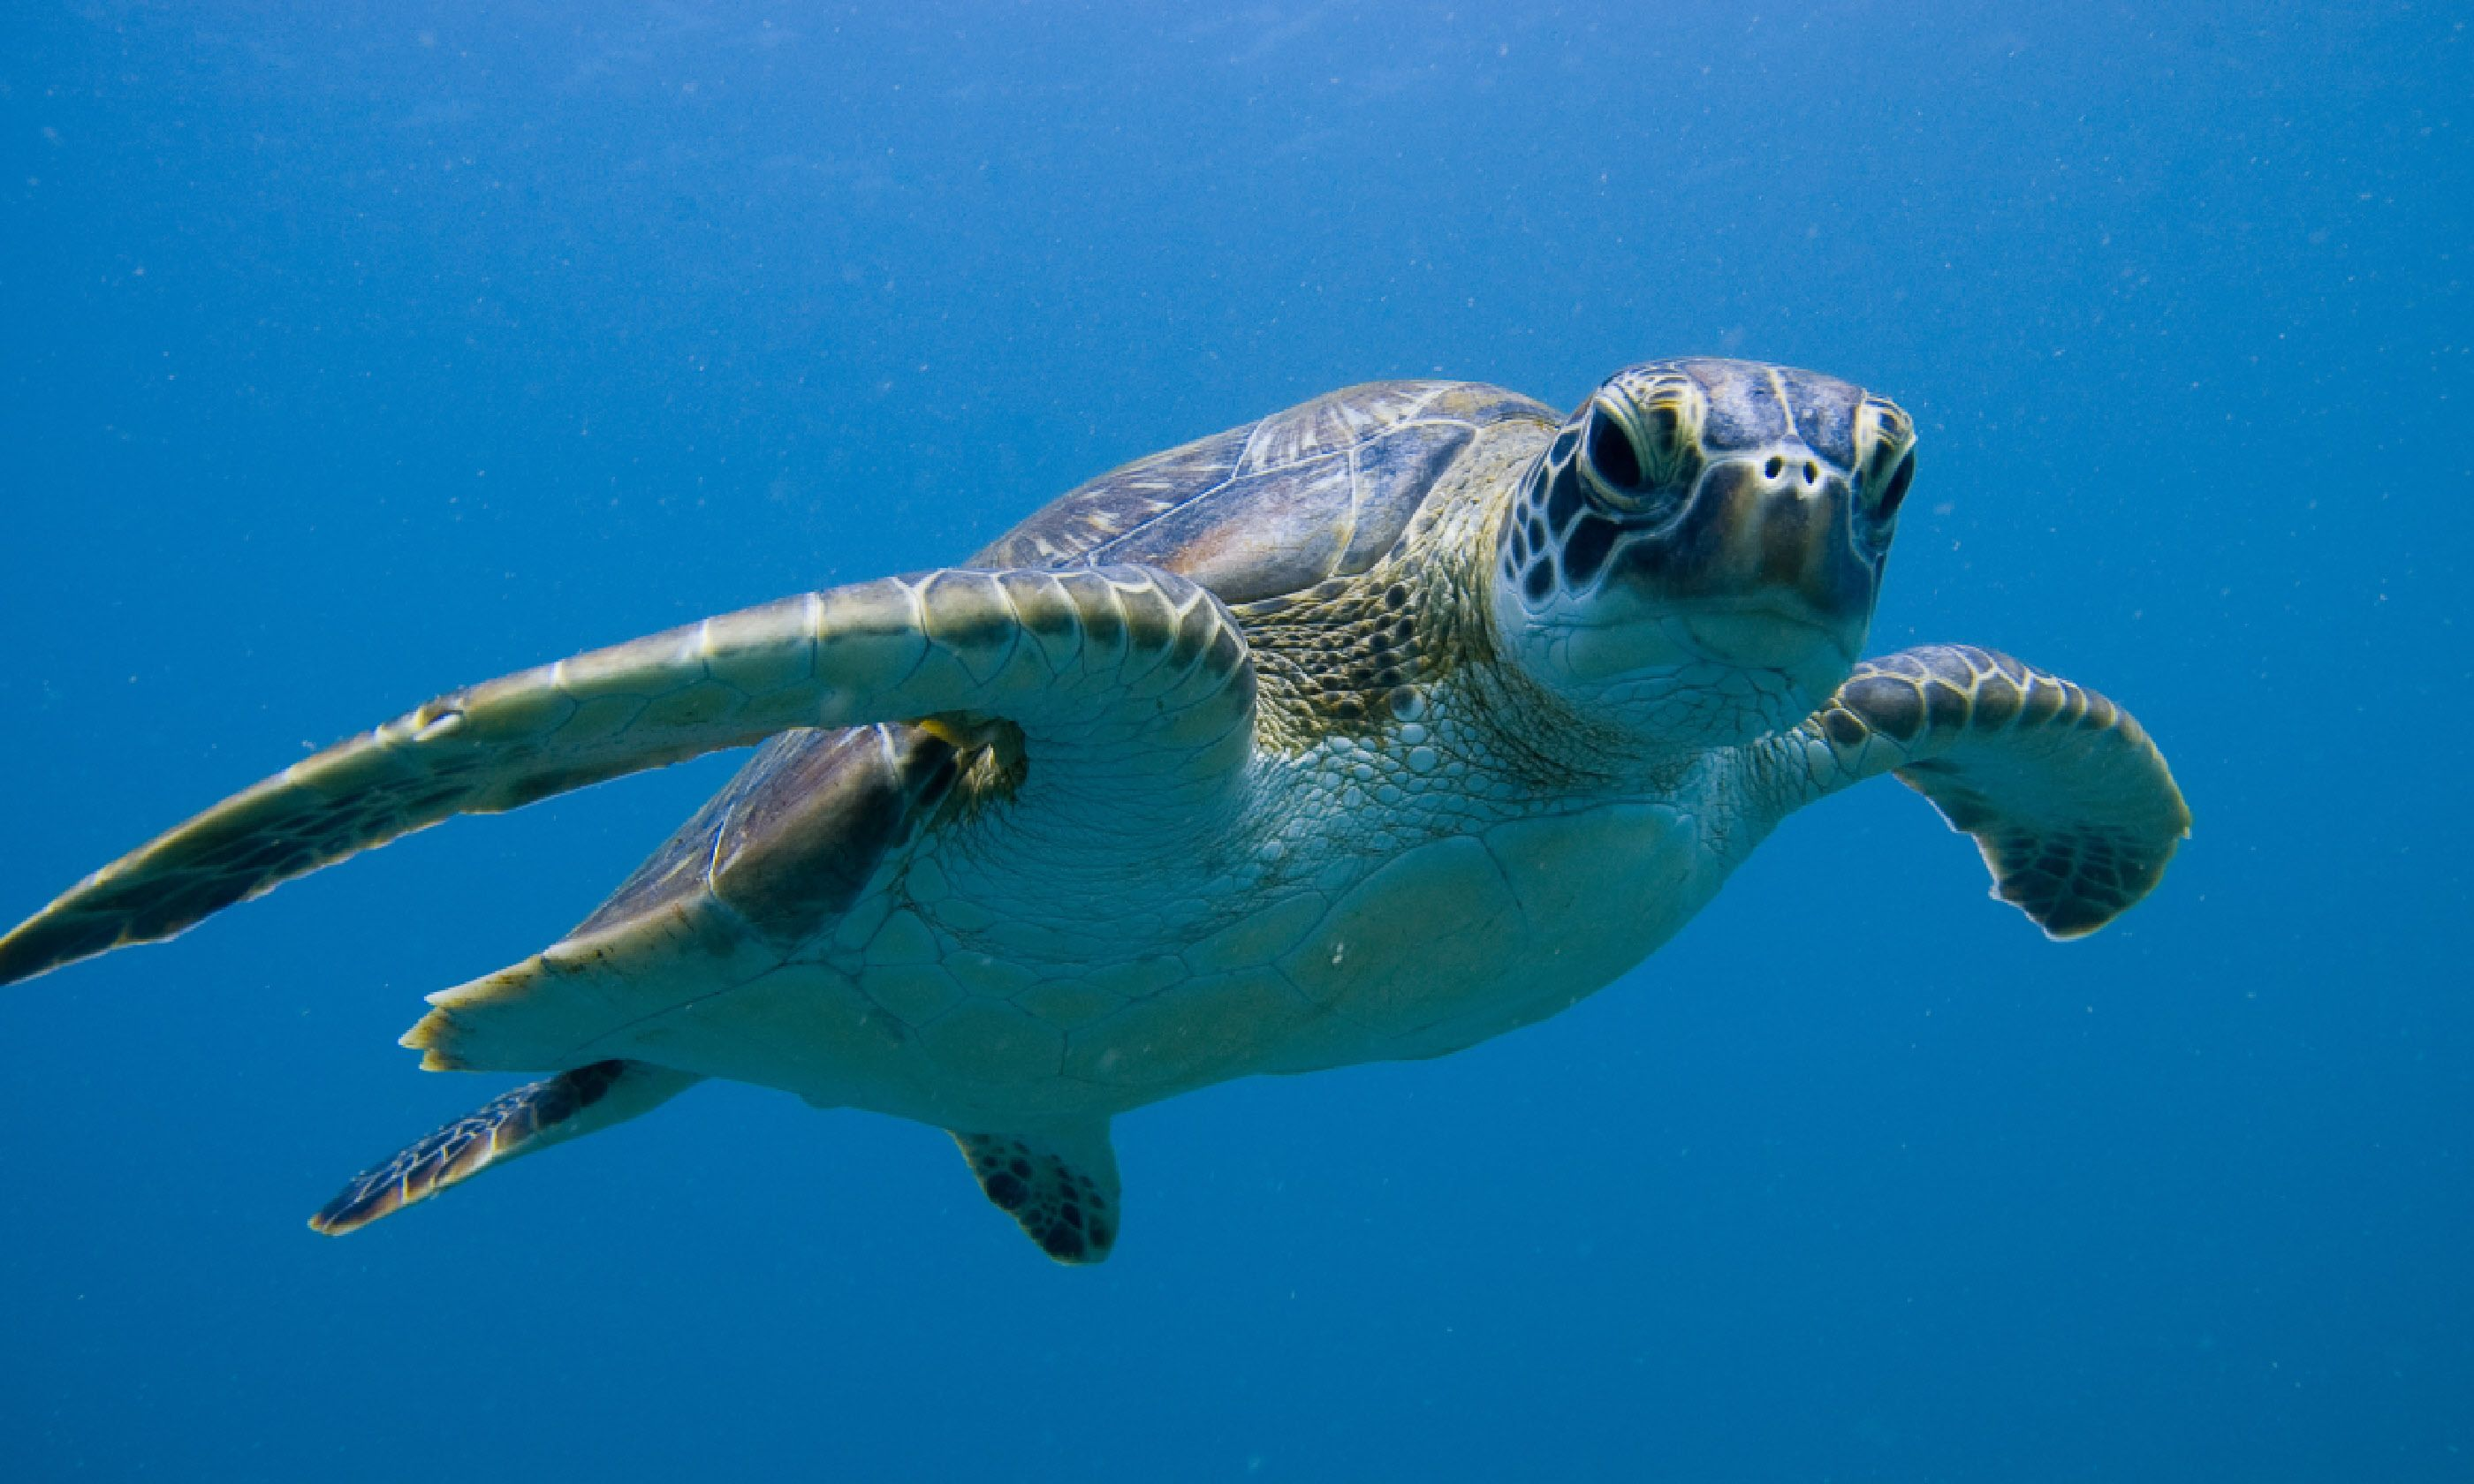 Green sea turtle, Ningaloo Reef (Shutterstock)